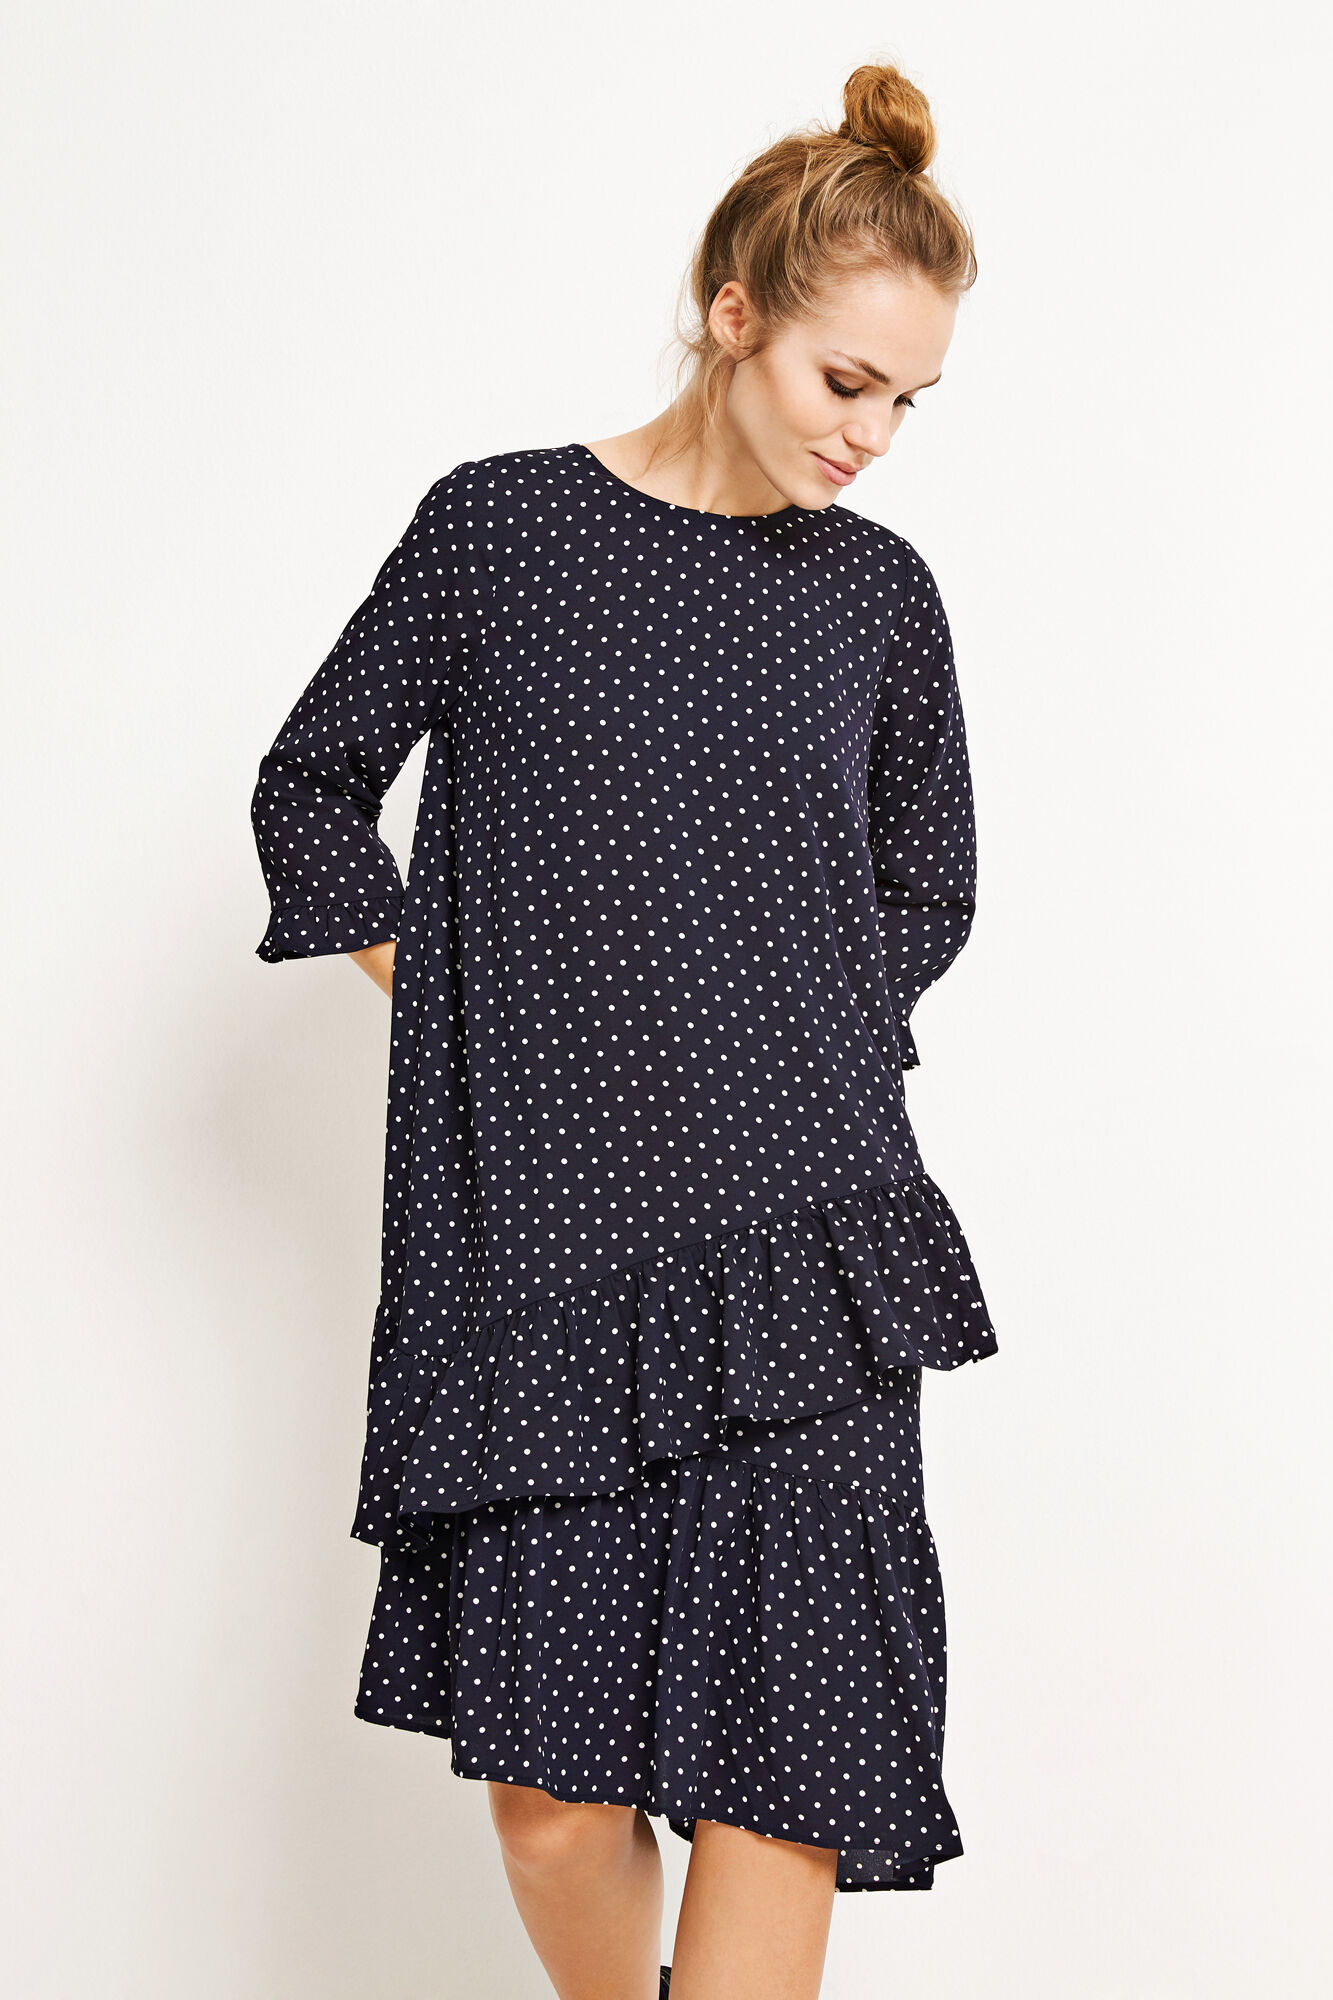 ENGUM 3/4 DRESS AOP 6508, NAVY DOT SMALL